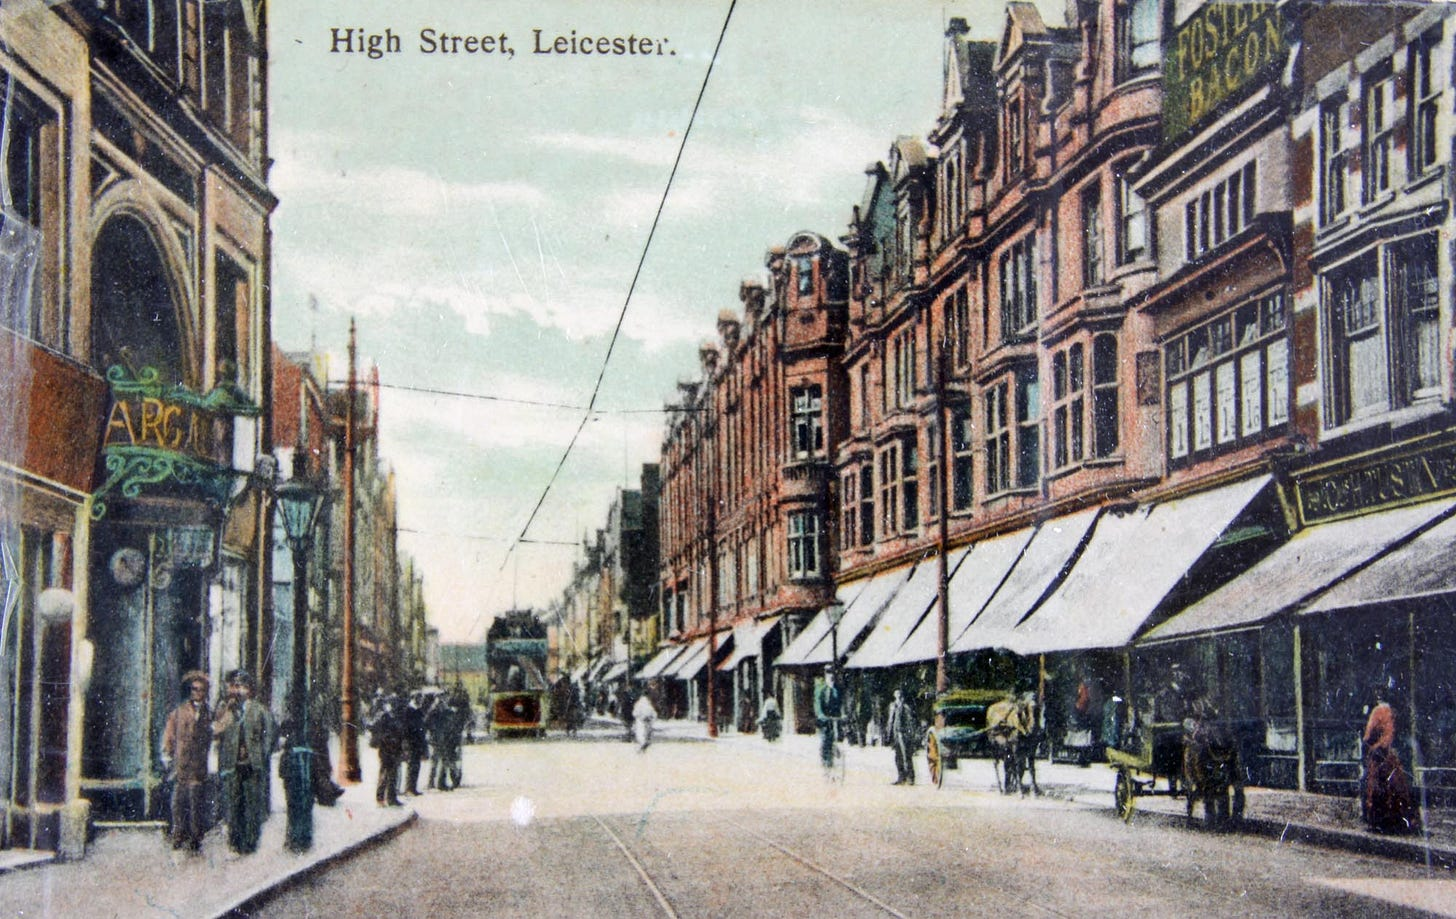 High Street - Story of Leicester